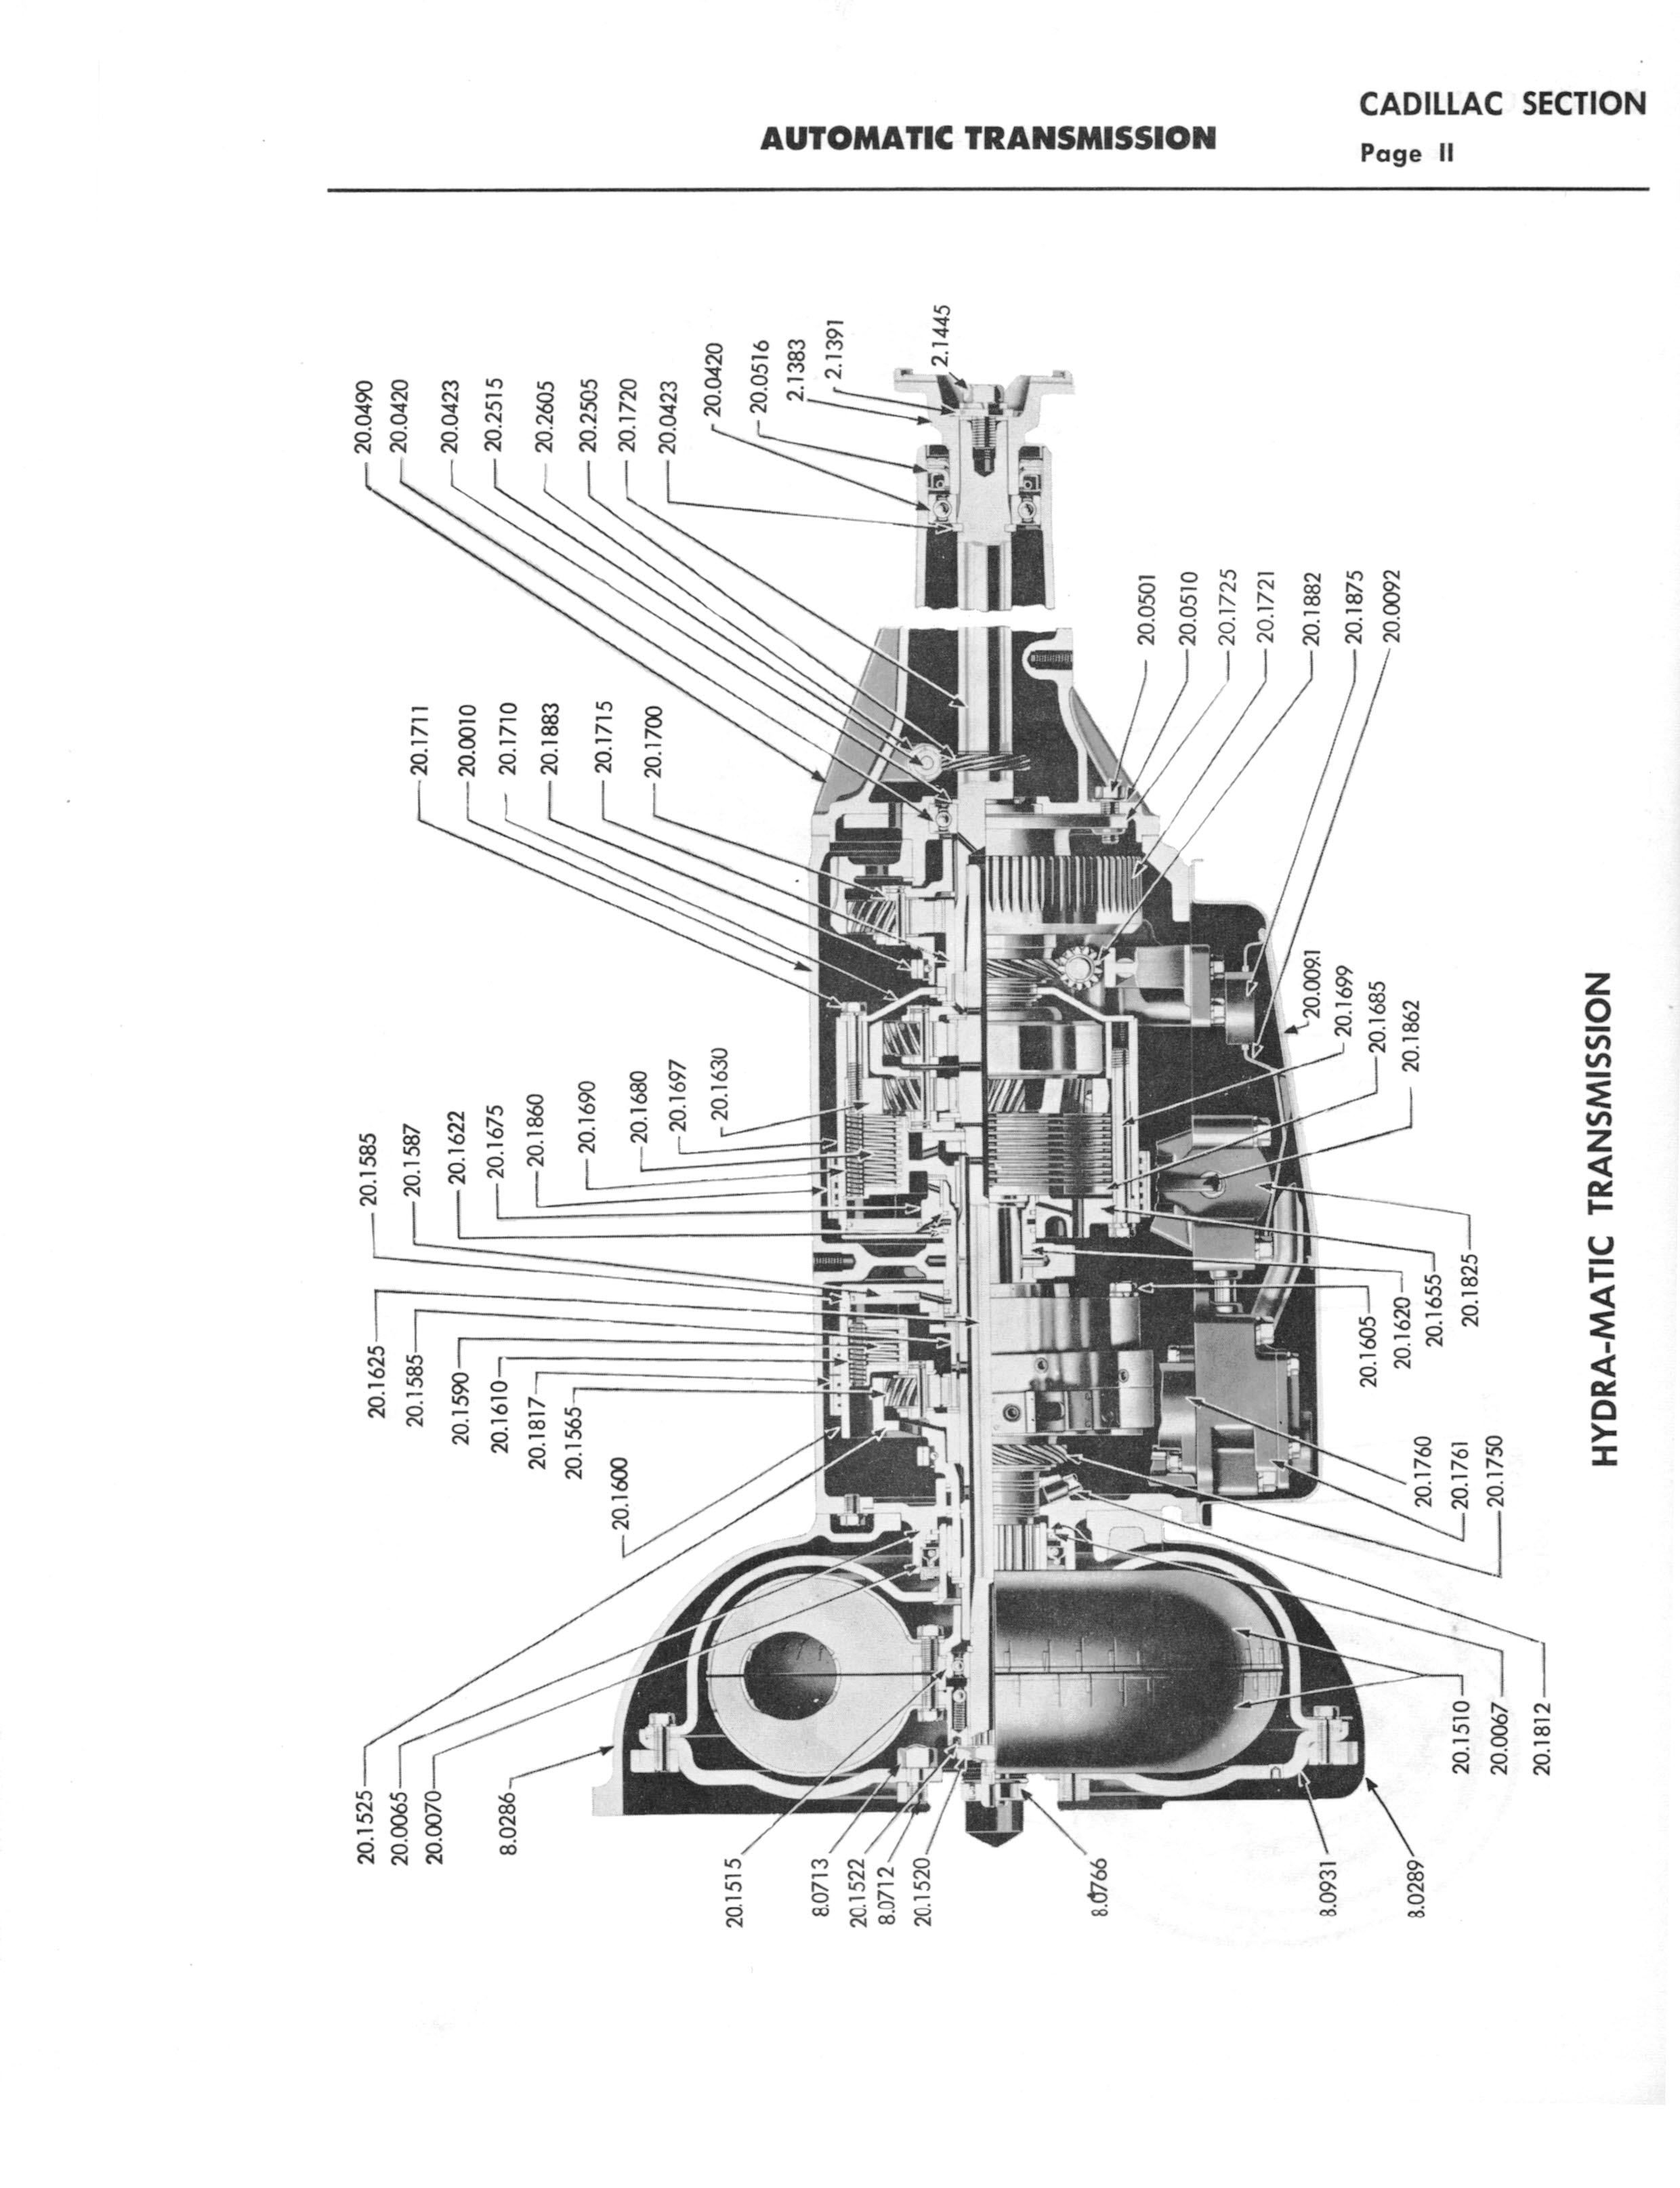 A-3010 Automatic Transmission Parts Catalog: Hydra-Matic